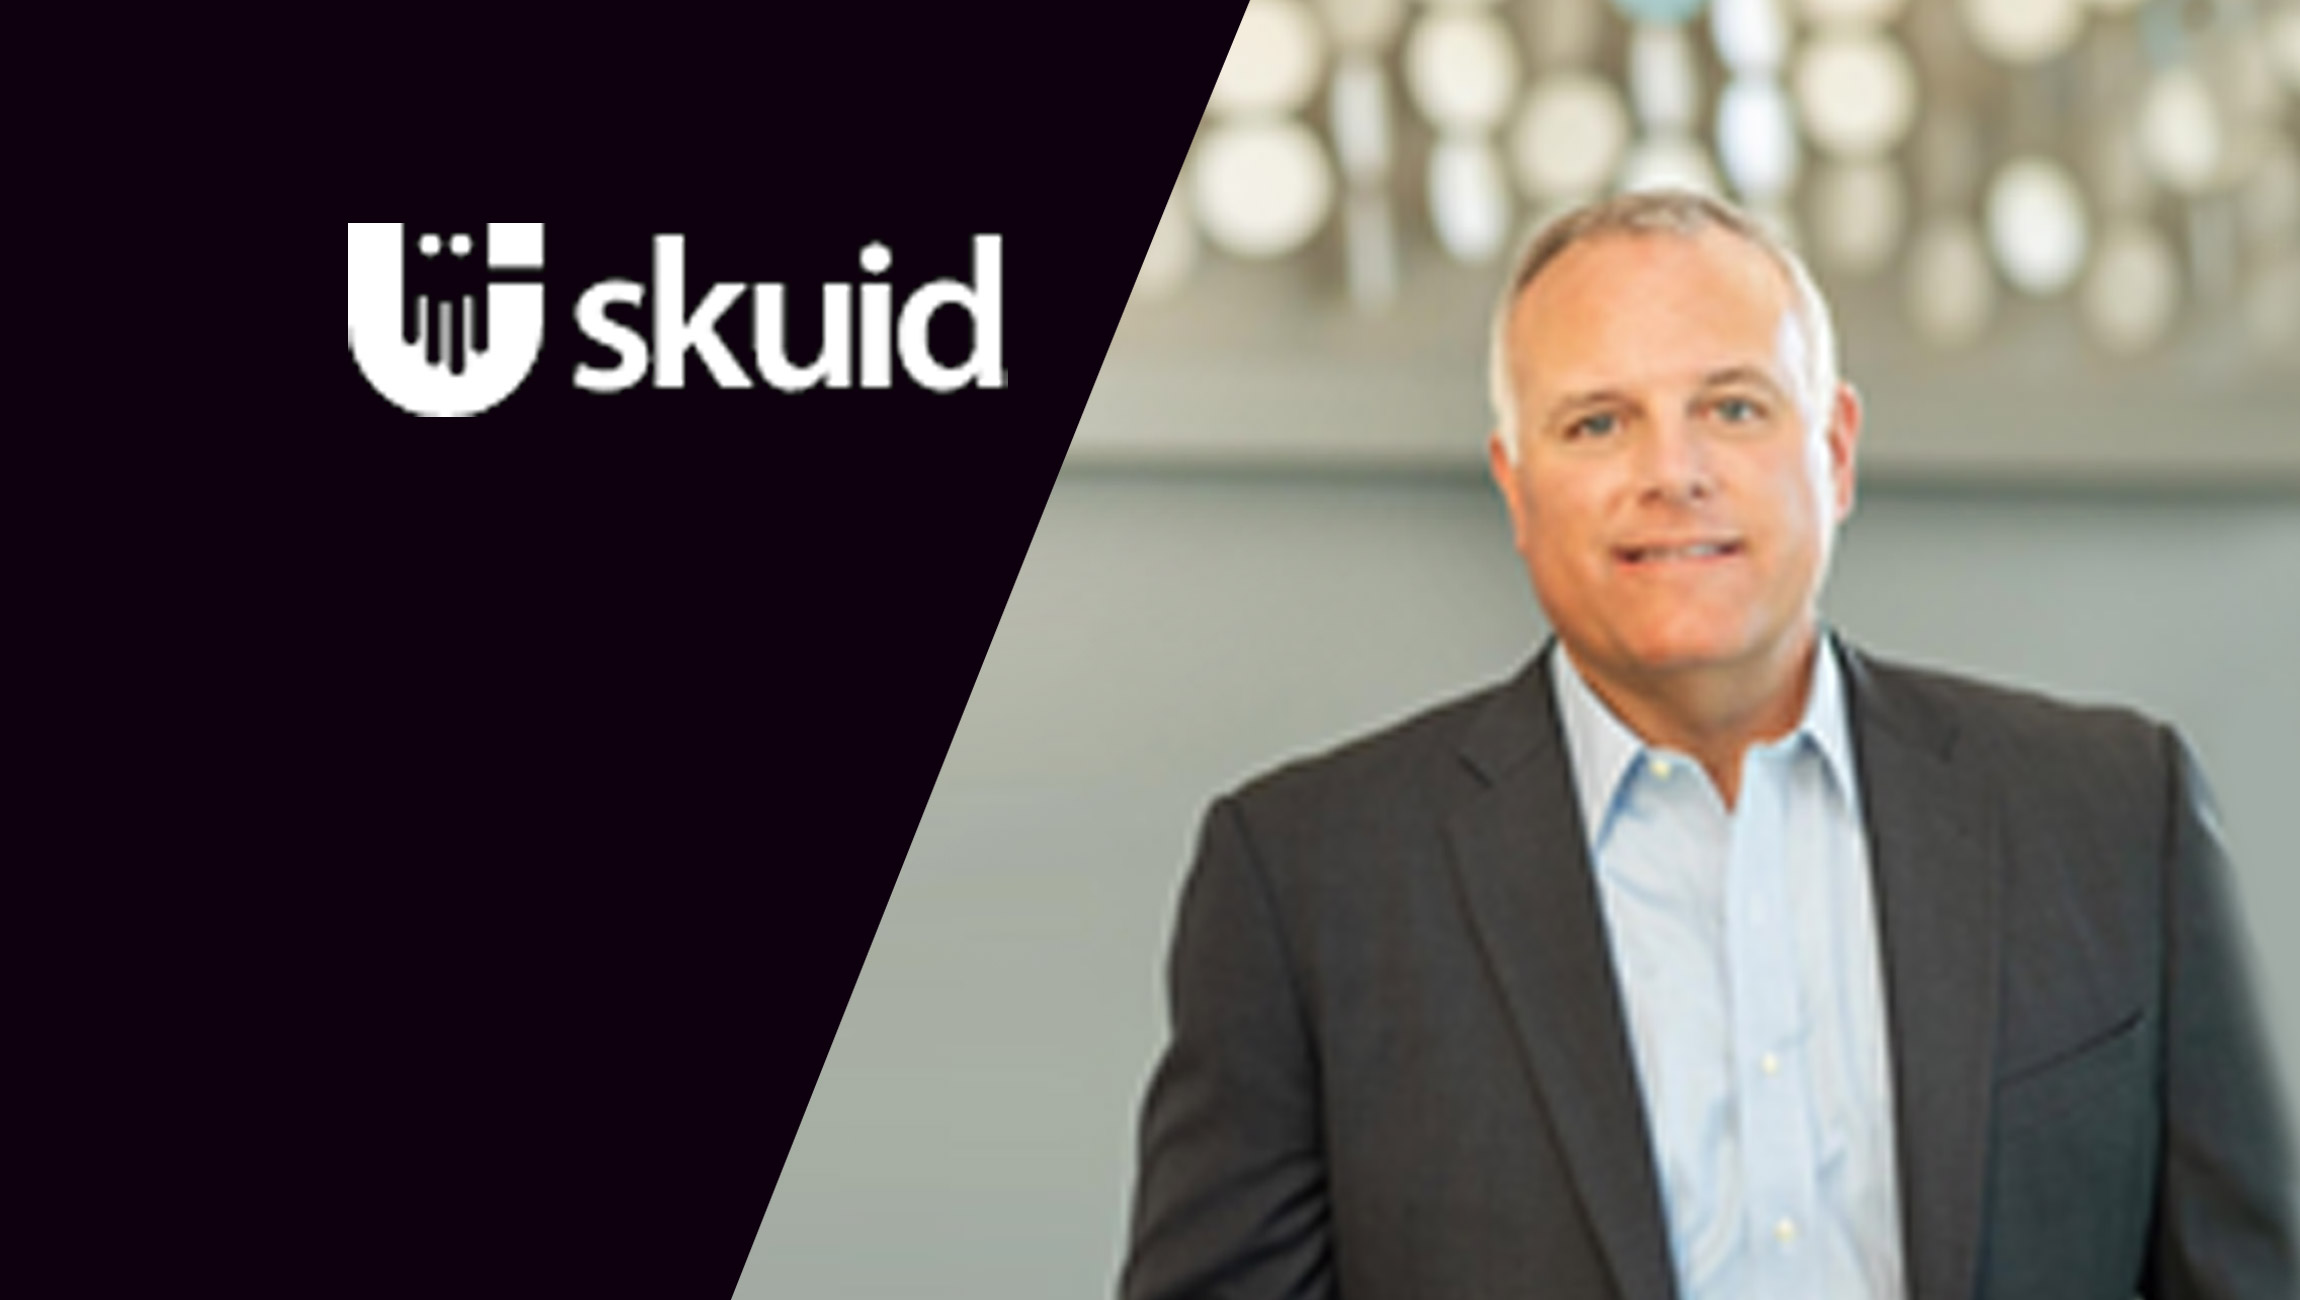 Skuid Enters Next Phase Of Growth With New CEO, Ryan Niemann